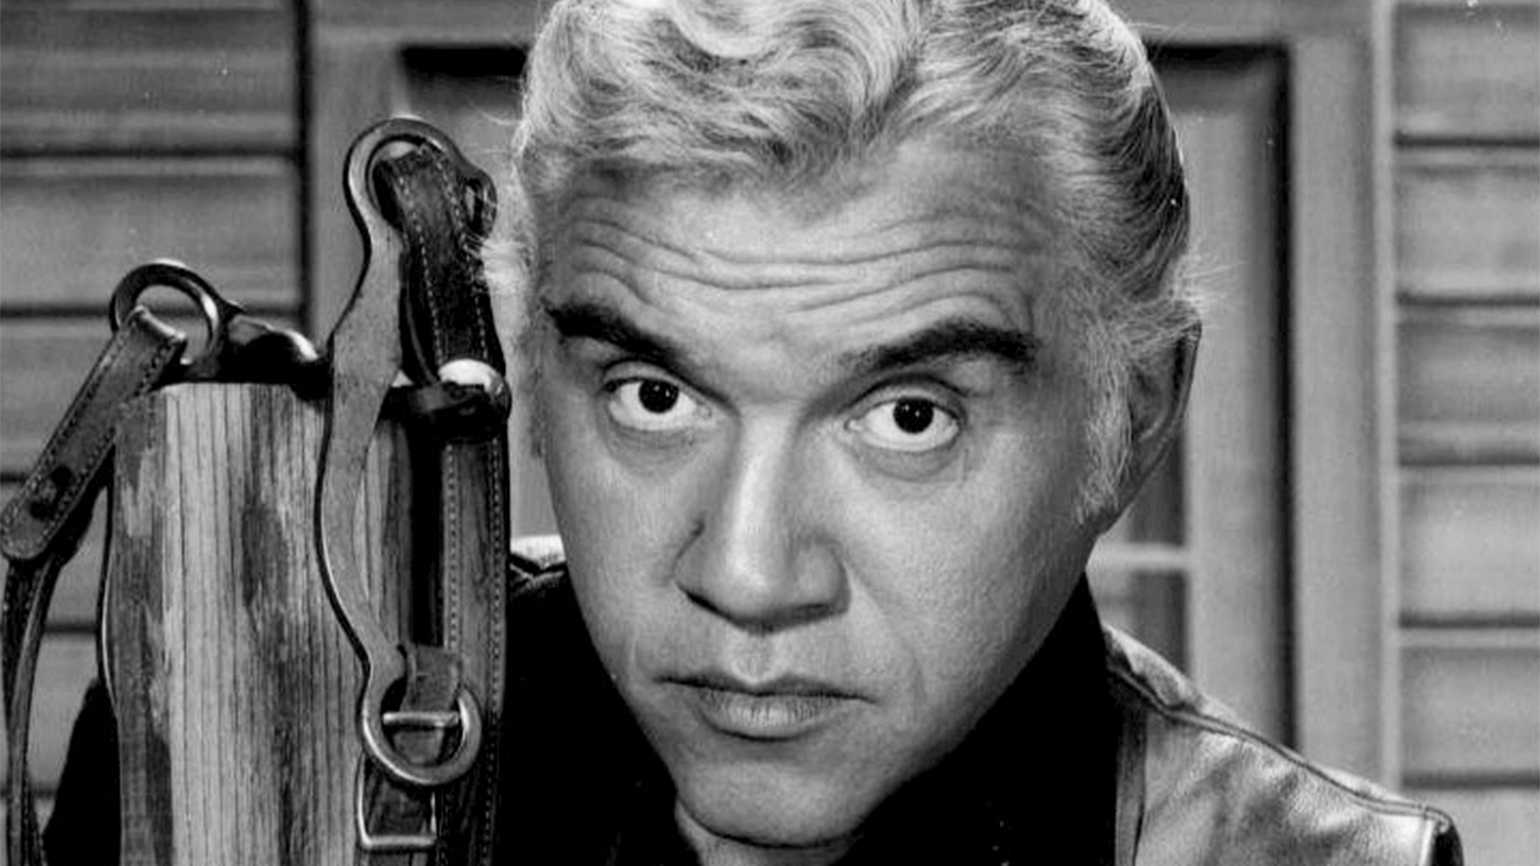 Lorne Greene as Bonanza's Ben Cartwright